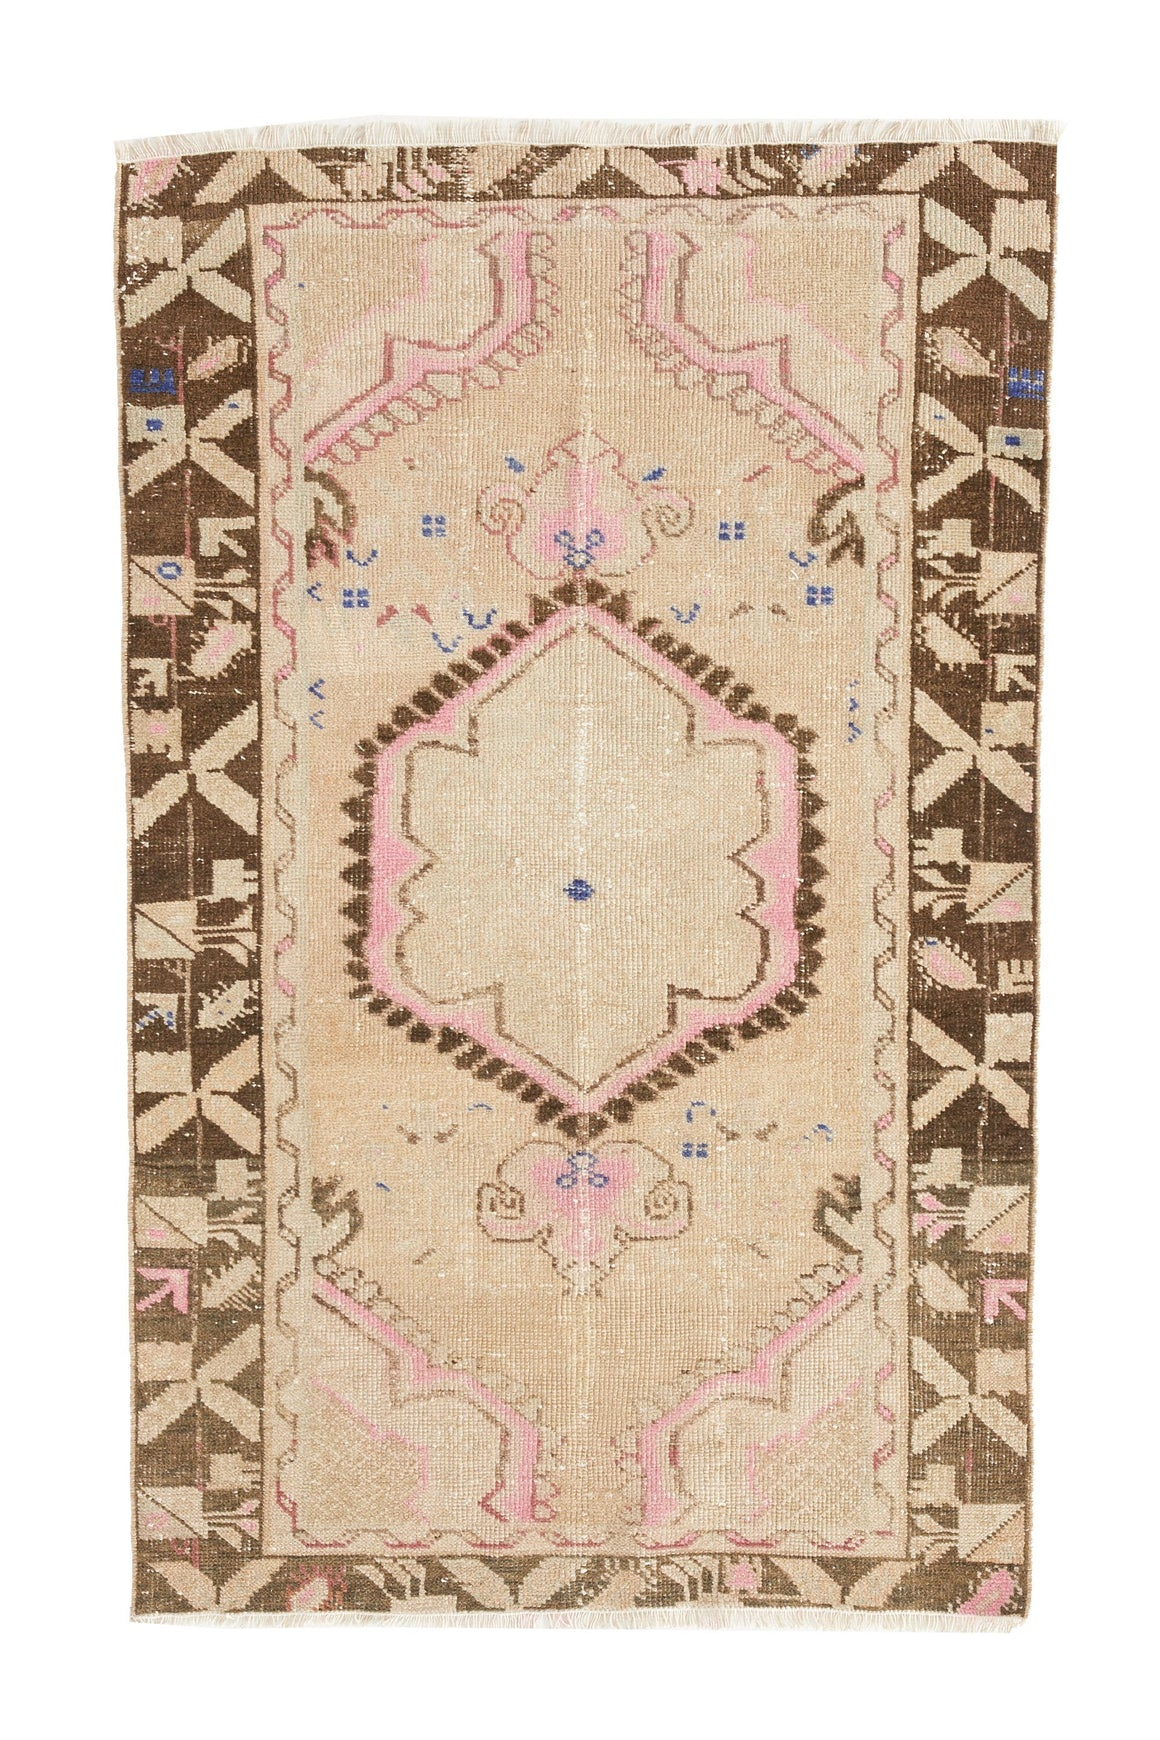 'Whimsical' - Vintage Turkish Faded Accent Rug - 2'9.5'' x 4'5'' - Canary Lane - Curated Textiles